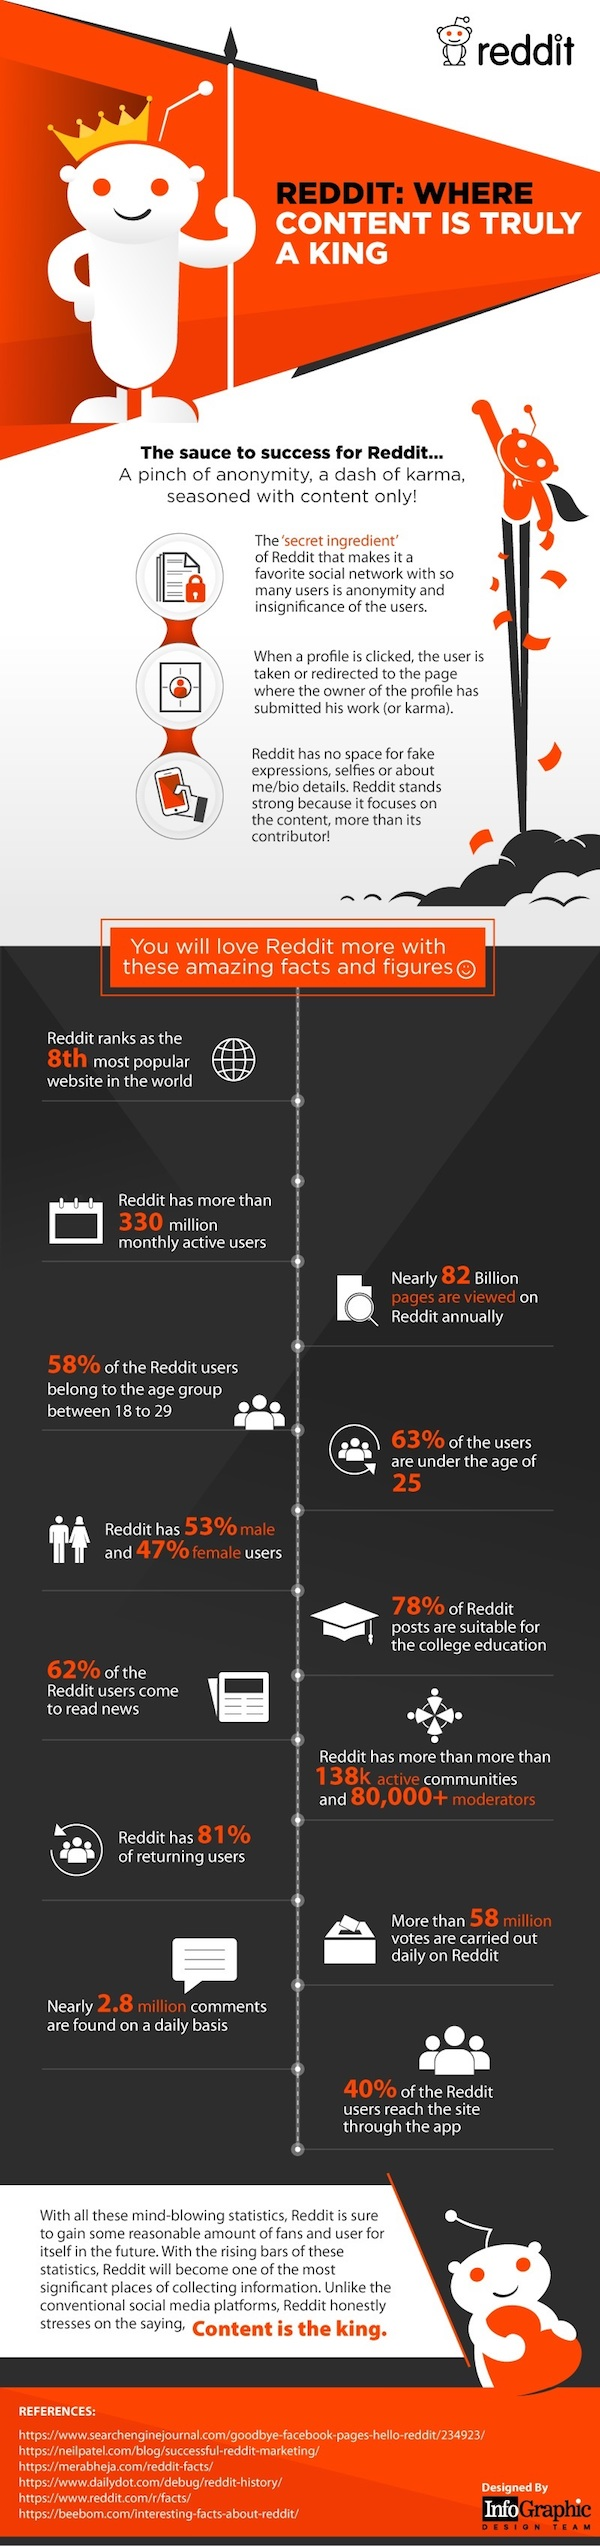 Infographic: Reddit stats for marketers.